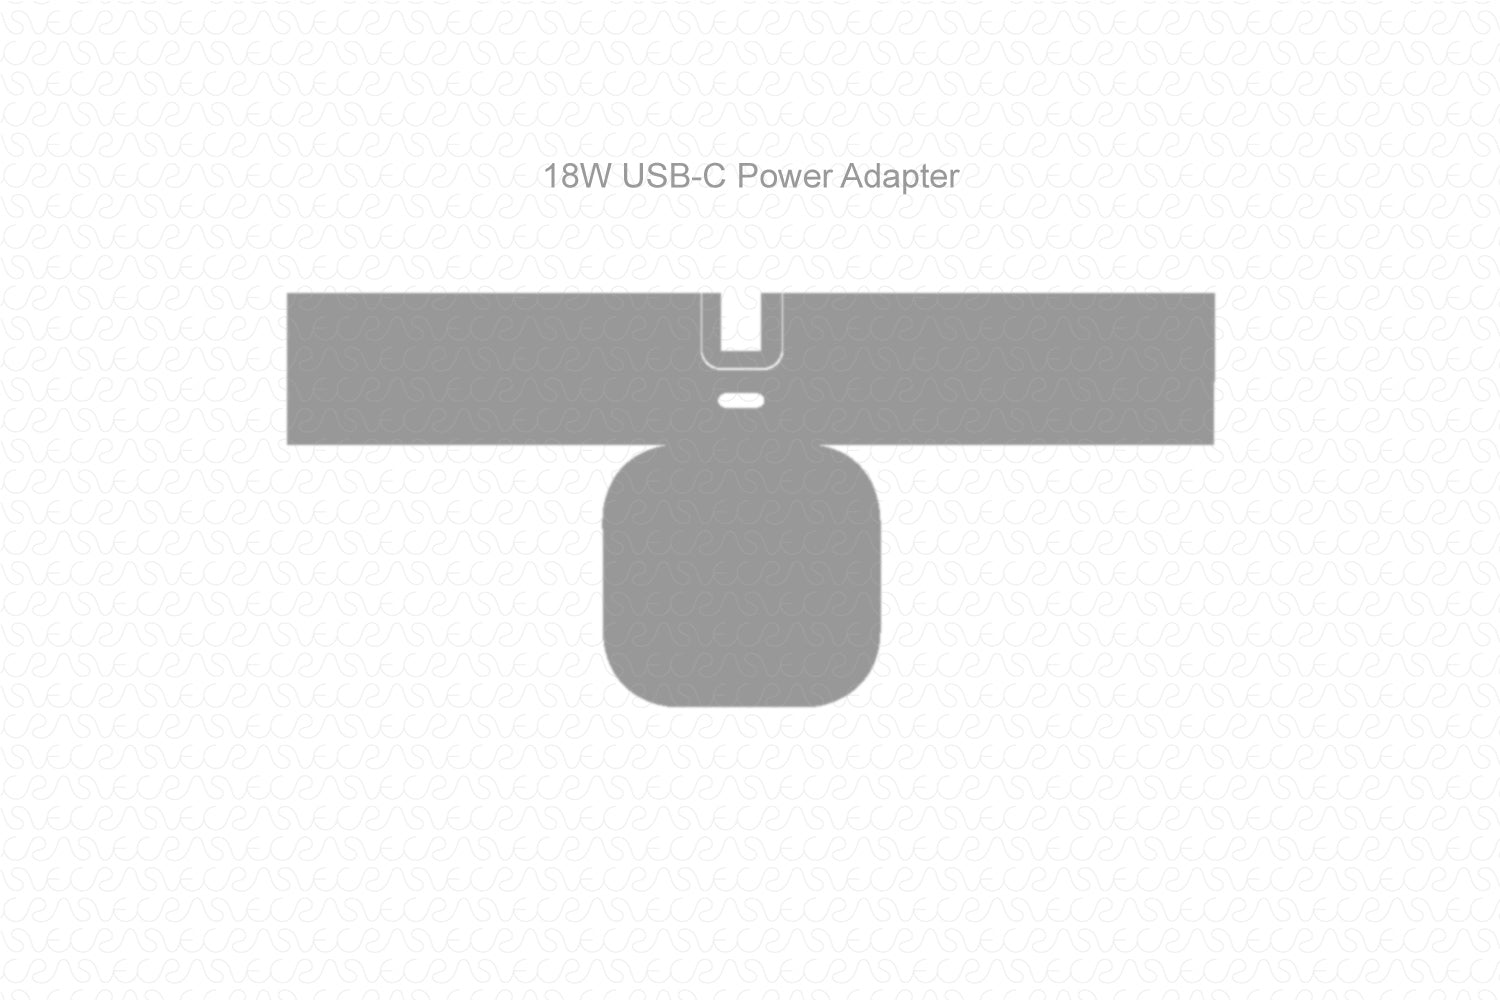 Apple 18W USB C Power Adapter 2019 Wrap Template Cut File